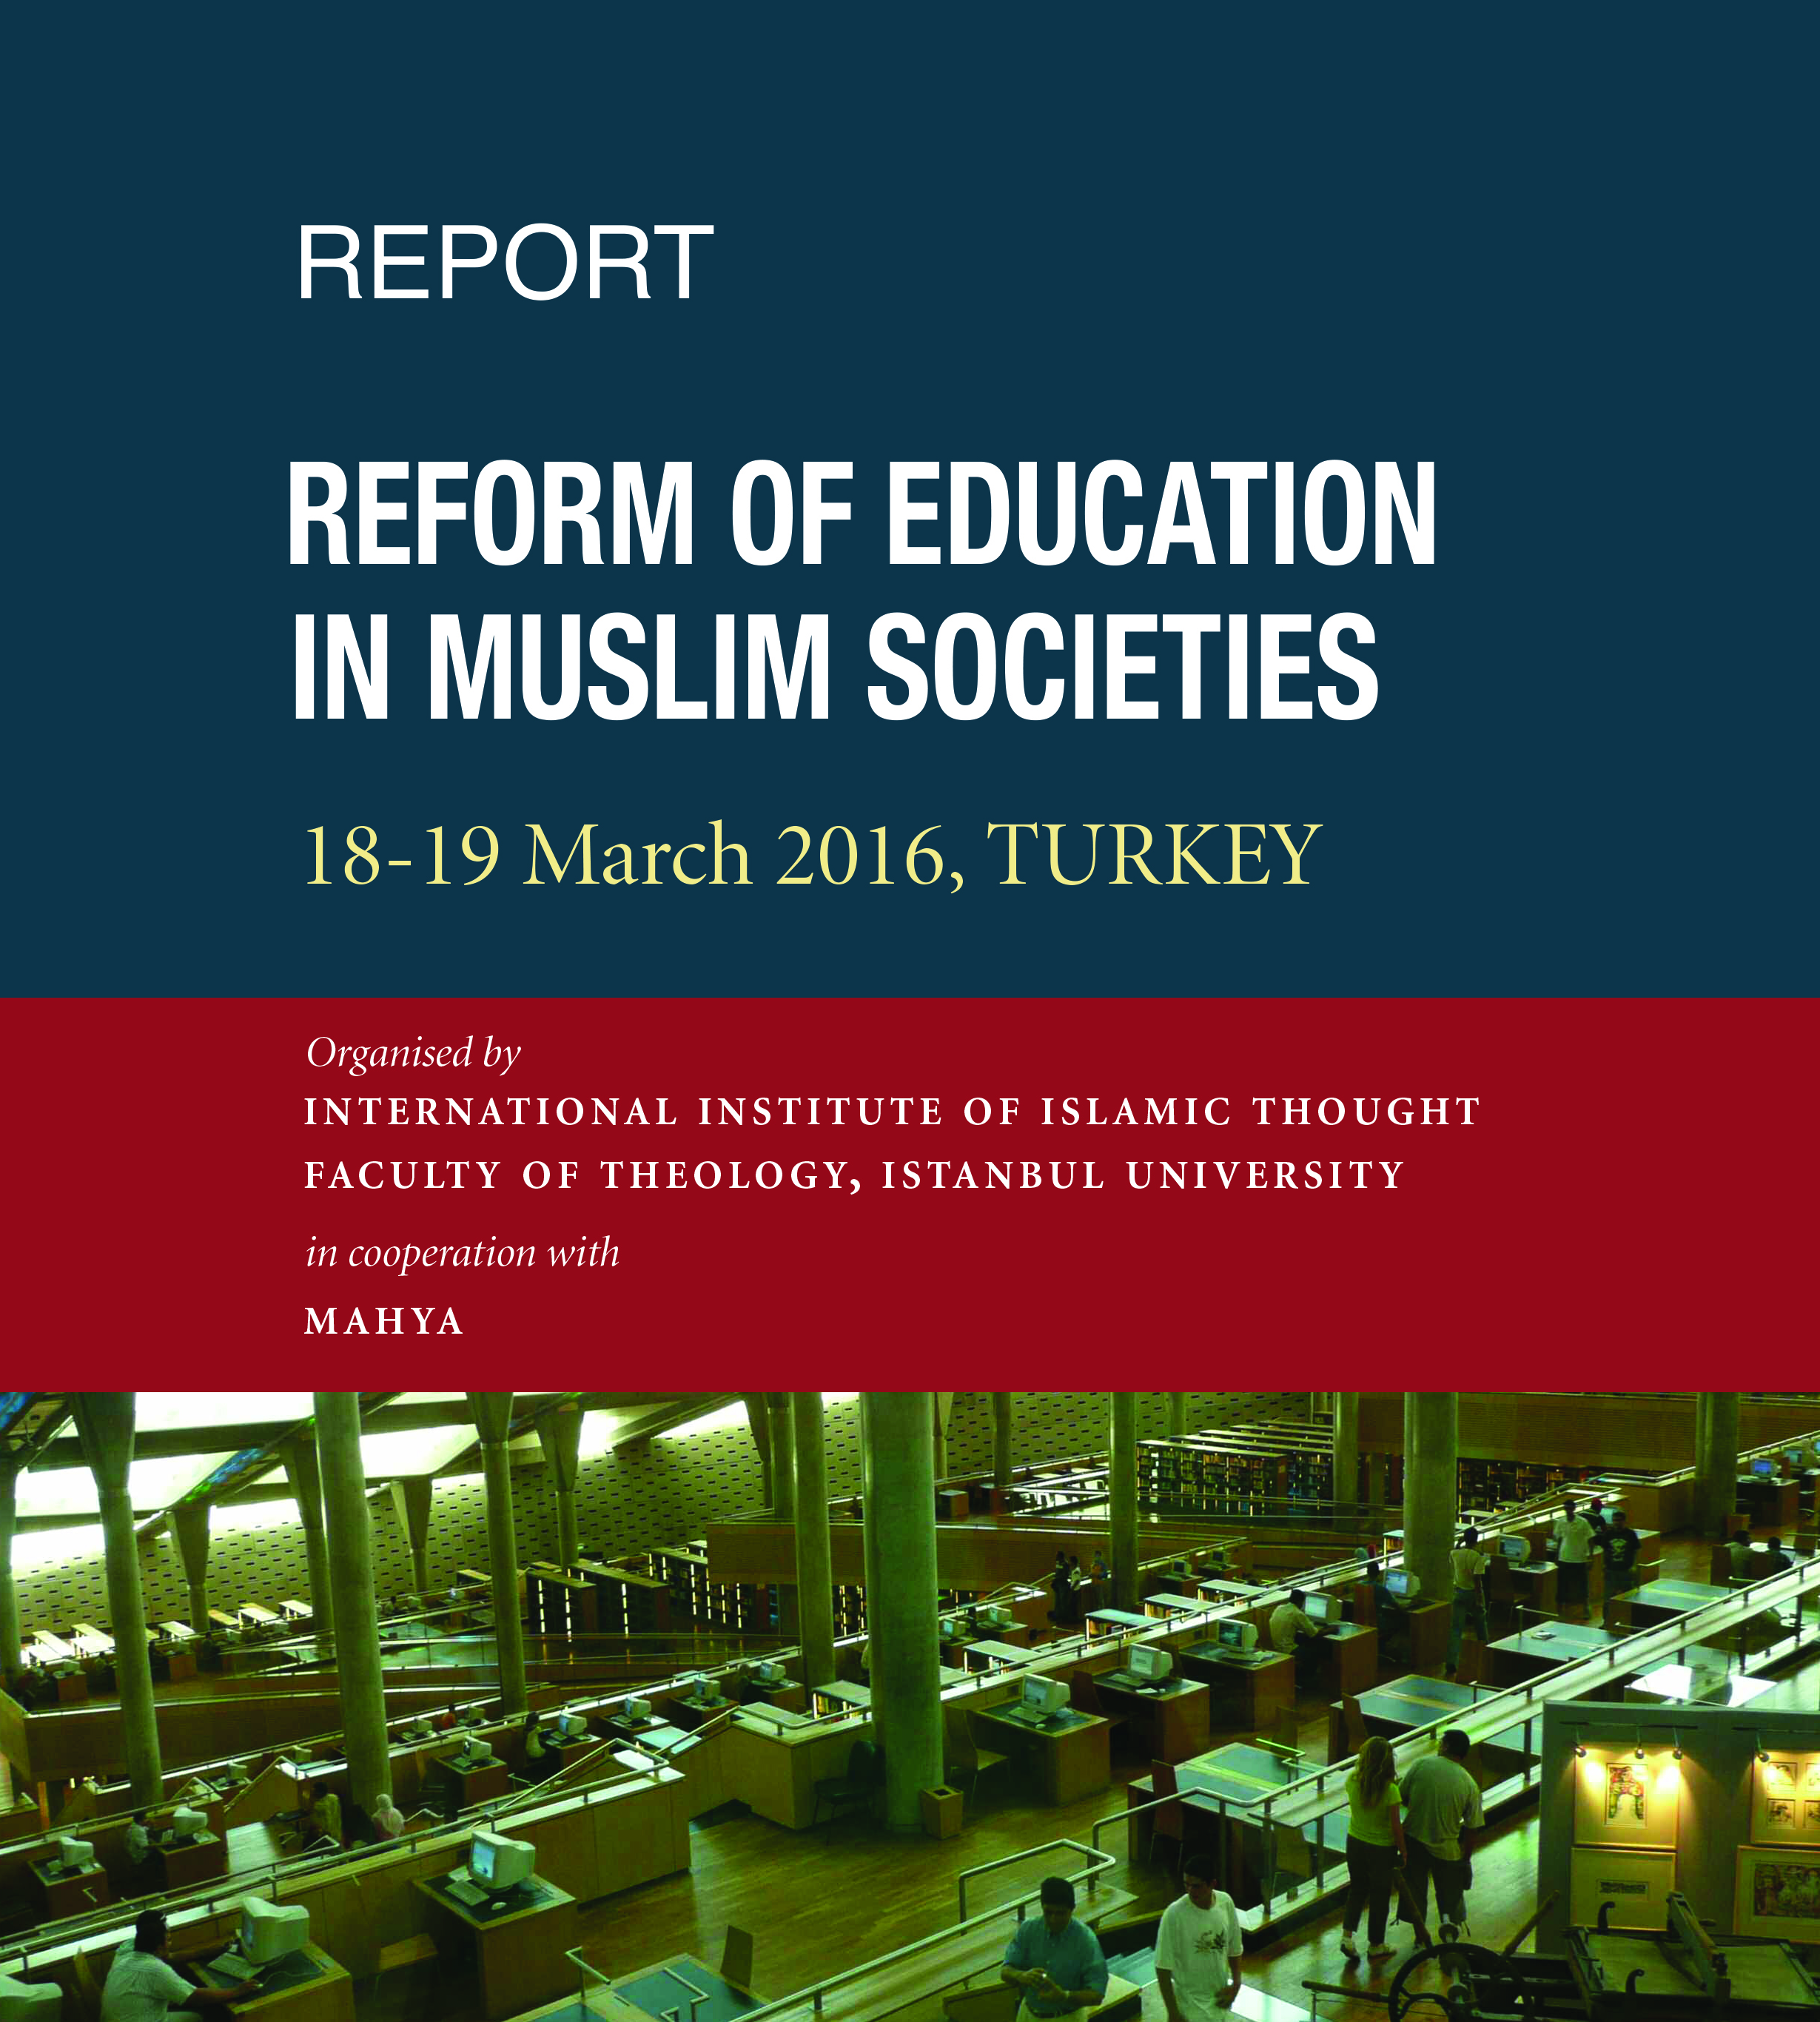 REFORM OF EDUCATION IN MUSLIM SOCIETIES